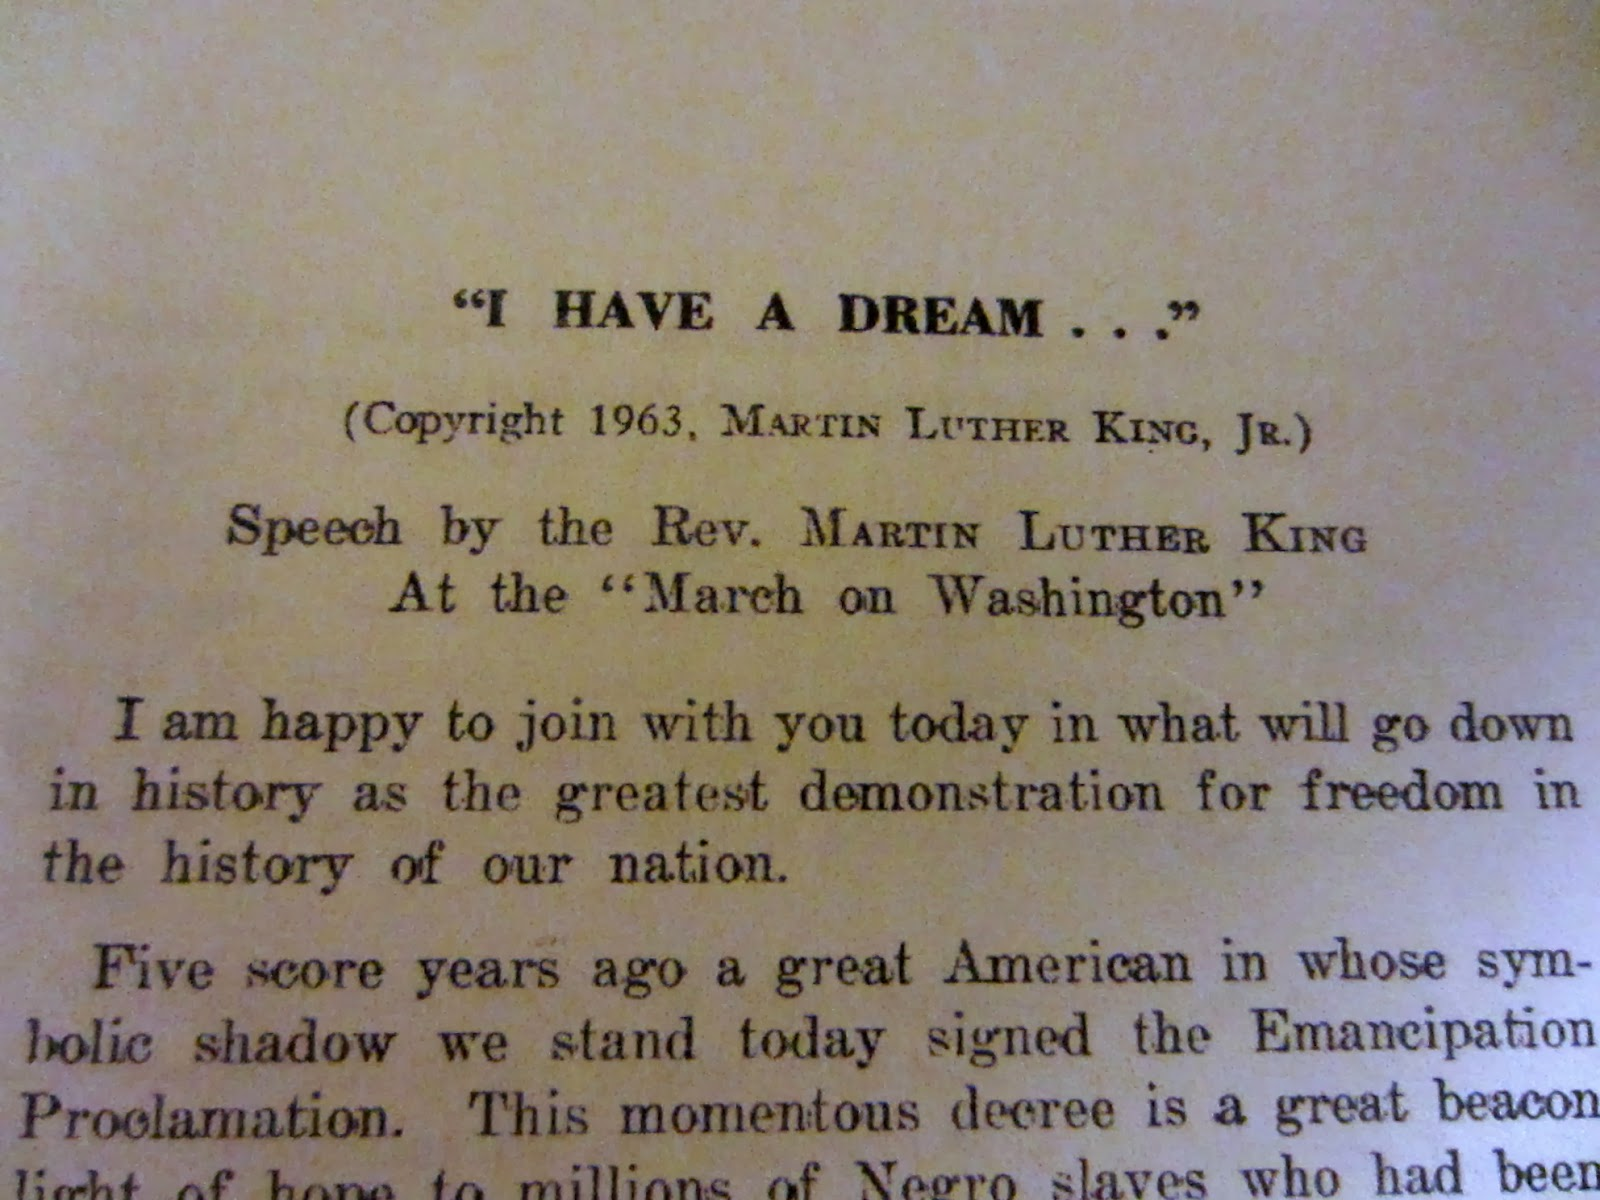 I Have a Dream (1963)